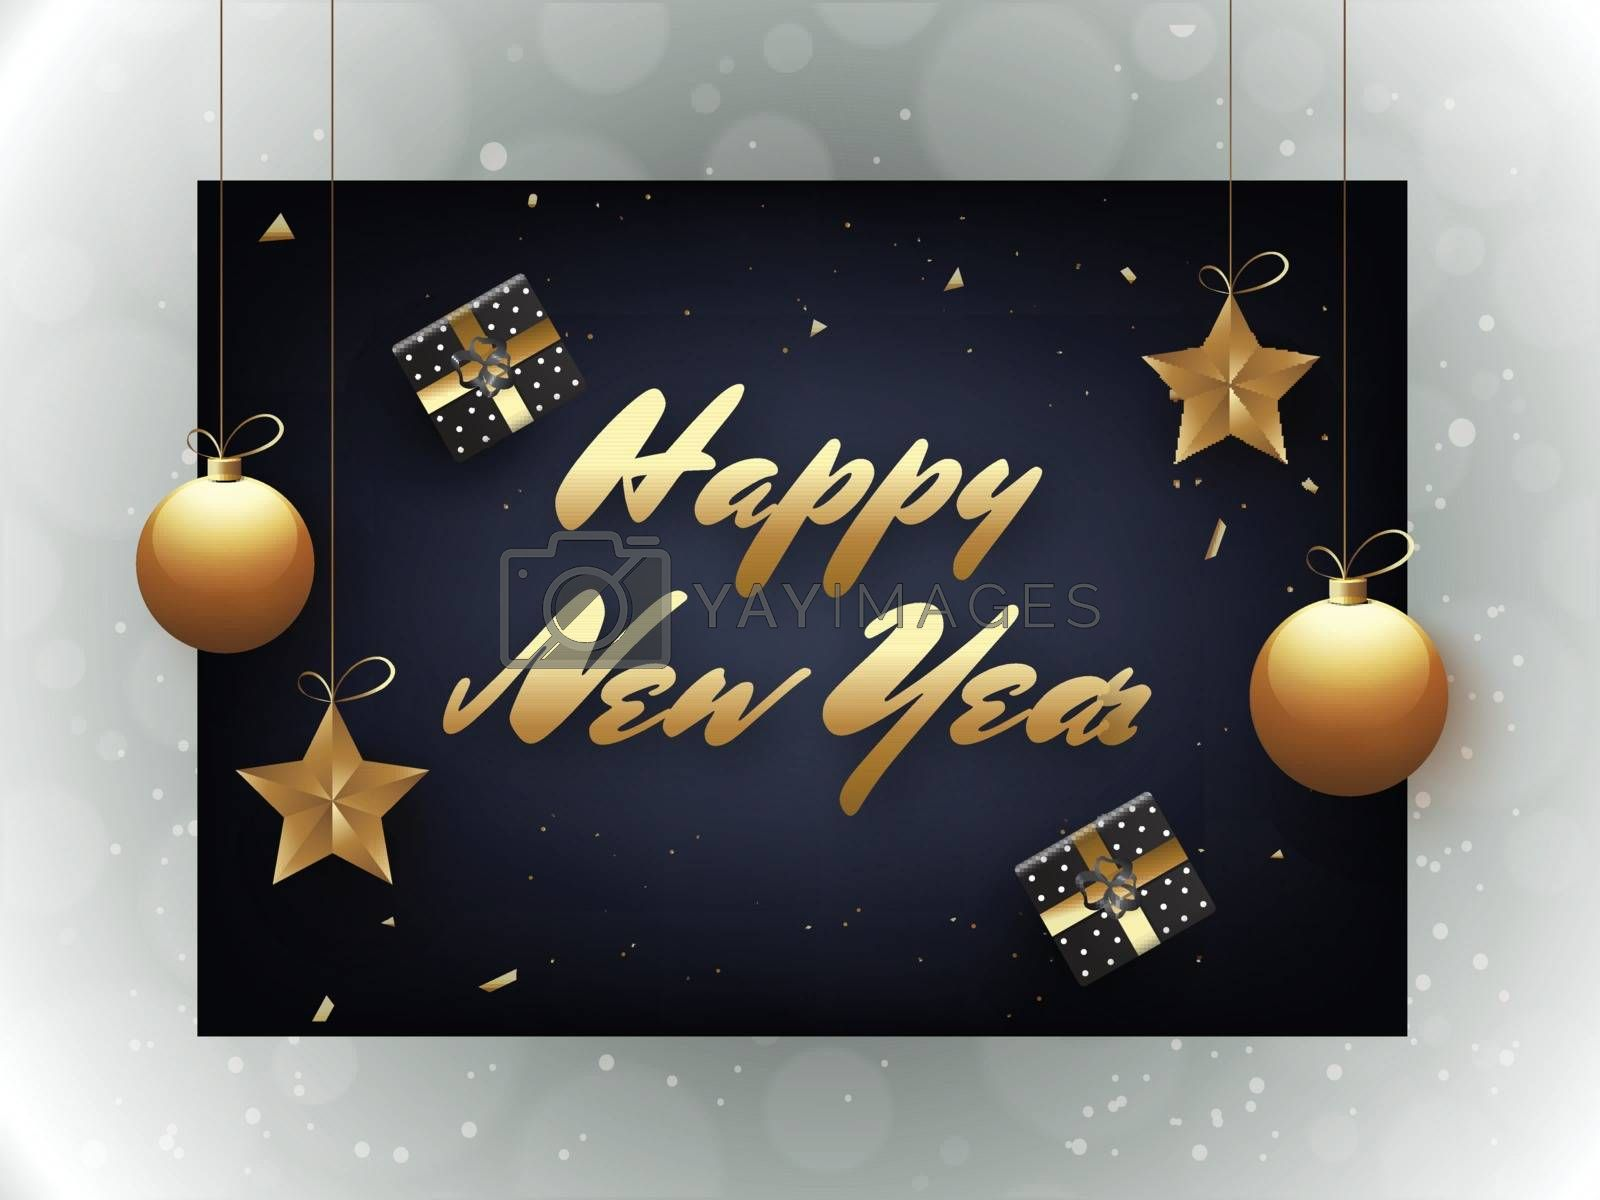 Stylish lettering of Happy New Year with stars and baubles hang on blue background. Can be used as greeting card design.